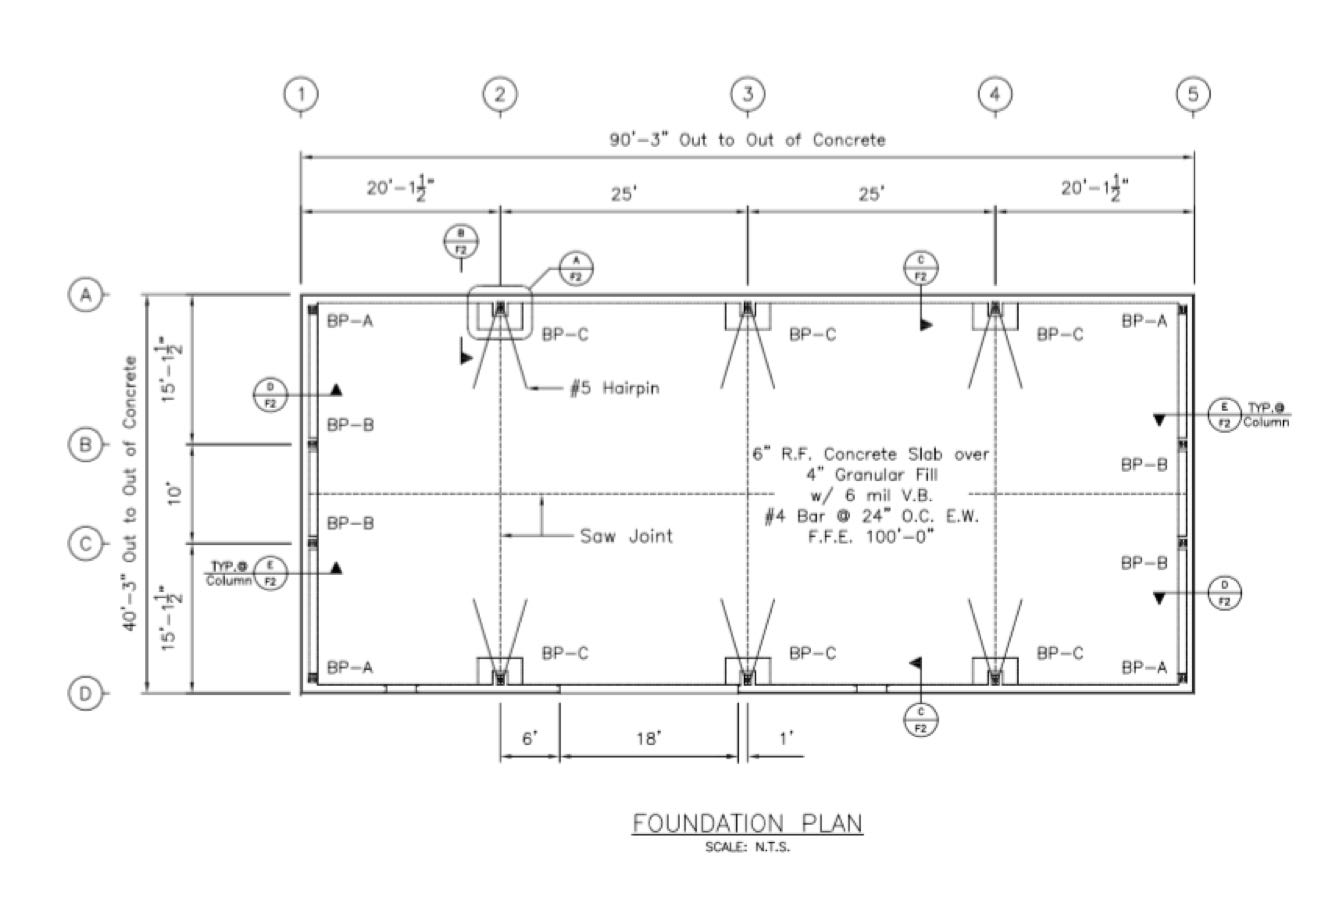 40 90 metal building foundation design qe engineering for House foundation plan